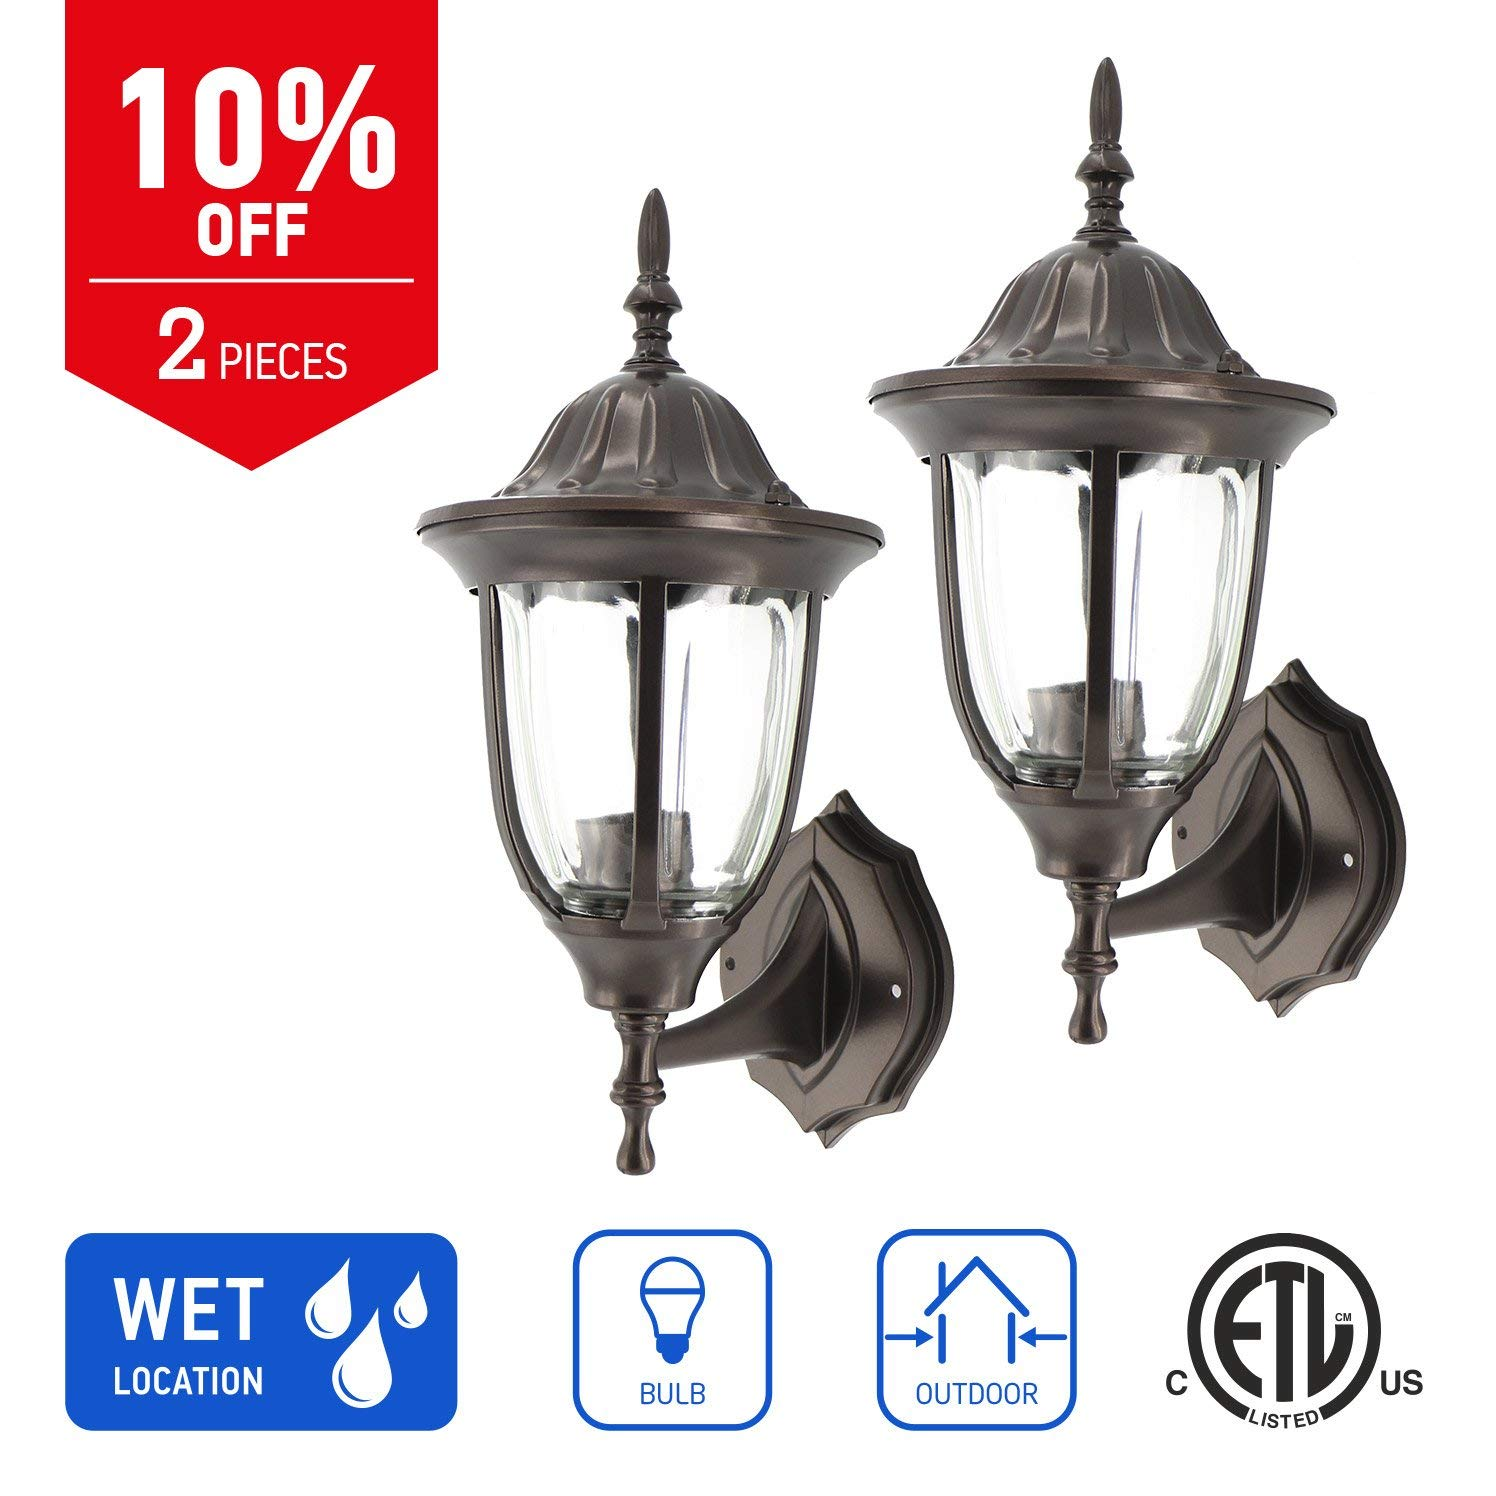 IN HOME 1-Light Outdoor Exterior Wall Up Lantern, Traditional Porch Patio Lighting Fixture L03 with One E26 Base, Water-Proof, Bronze Cast Aluminum Housing, Clear Glass Panels, (2 Pack) ETL Listed